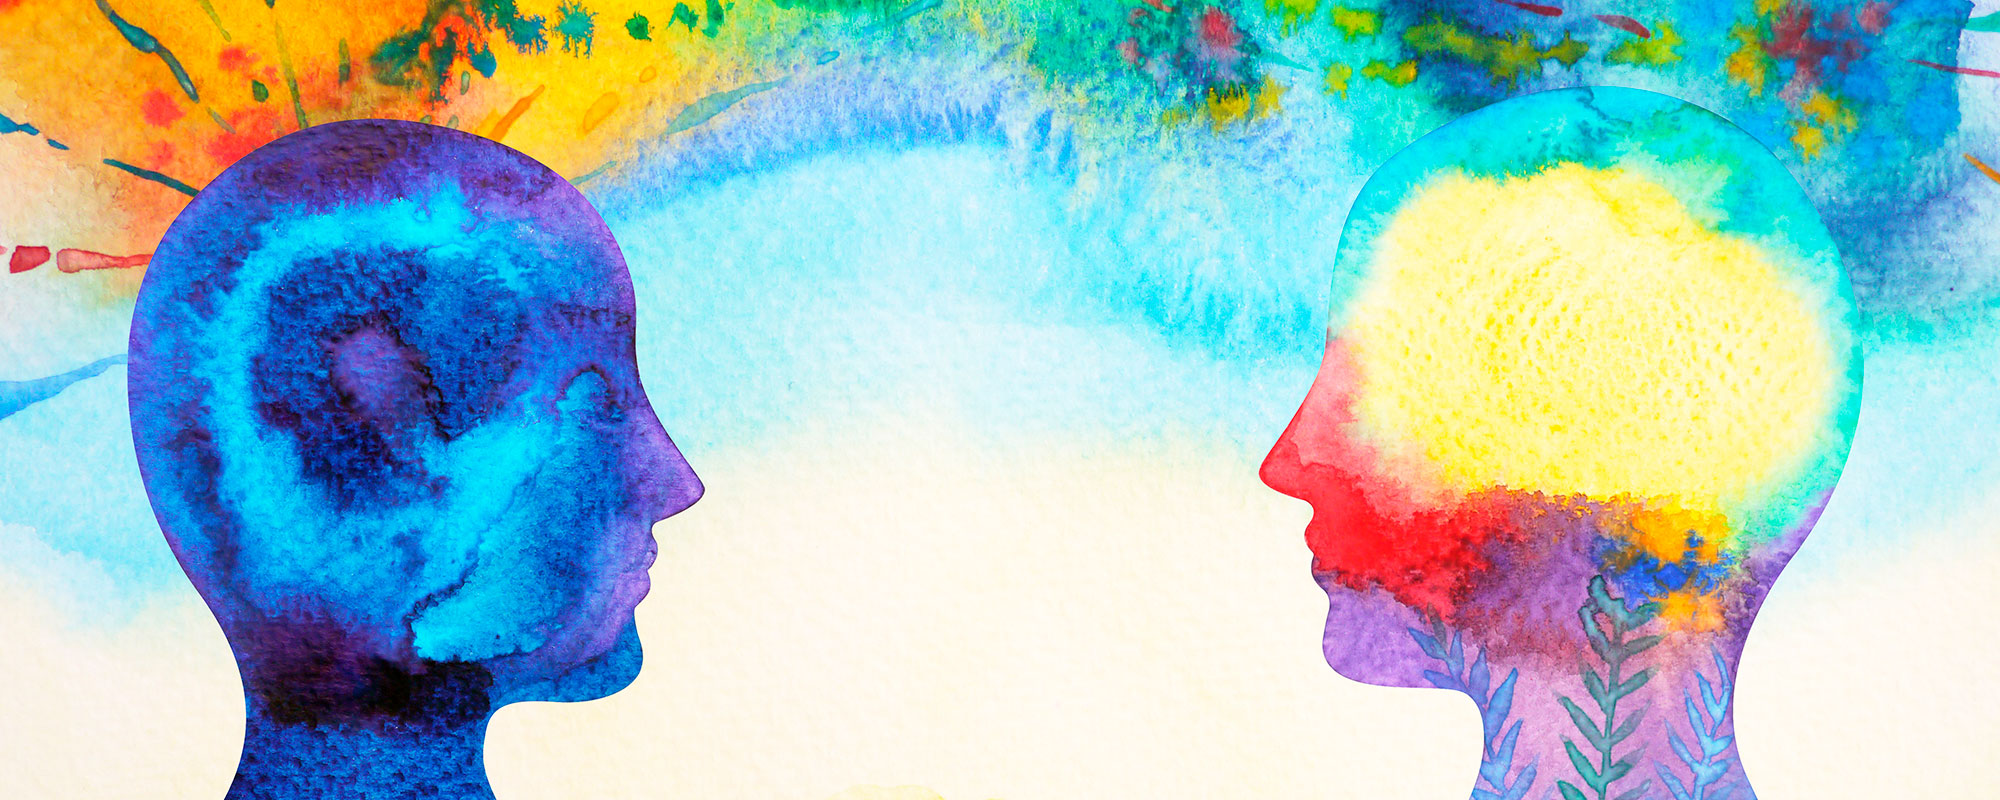 abstract watercolor painting of two figures facing each other